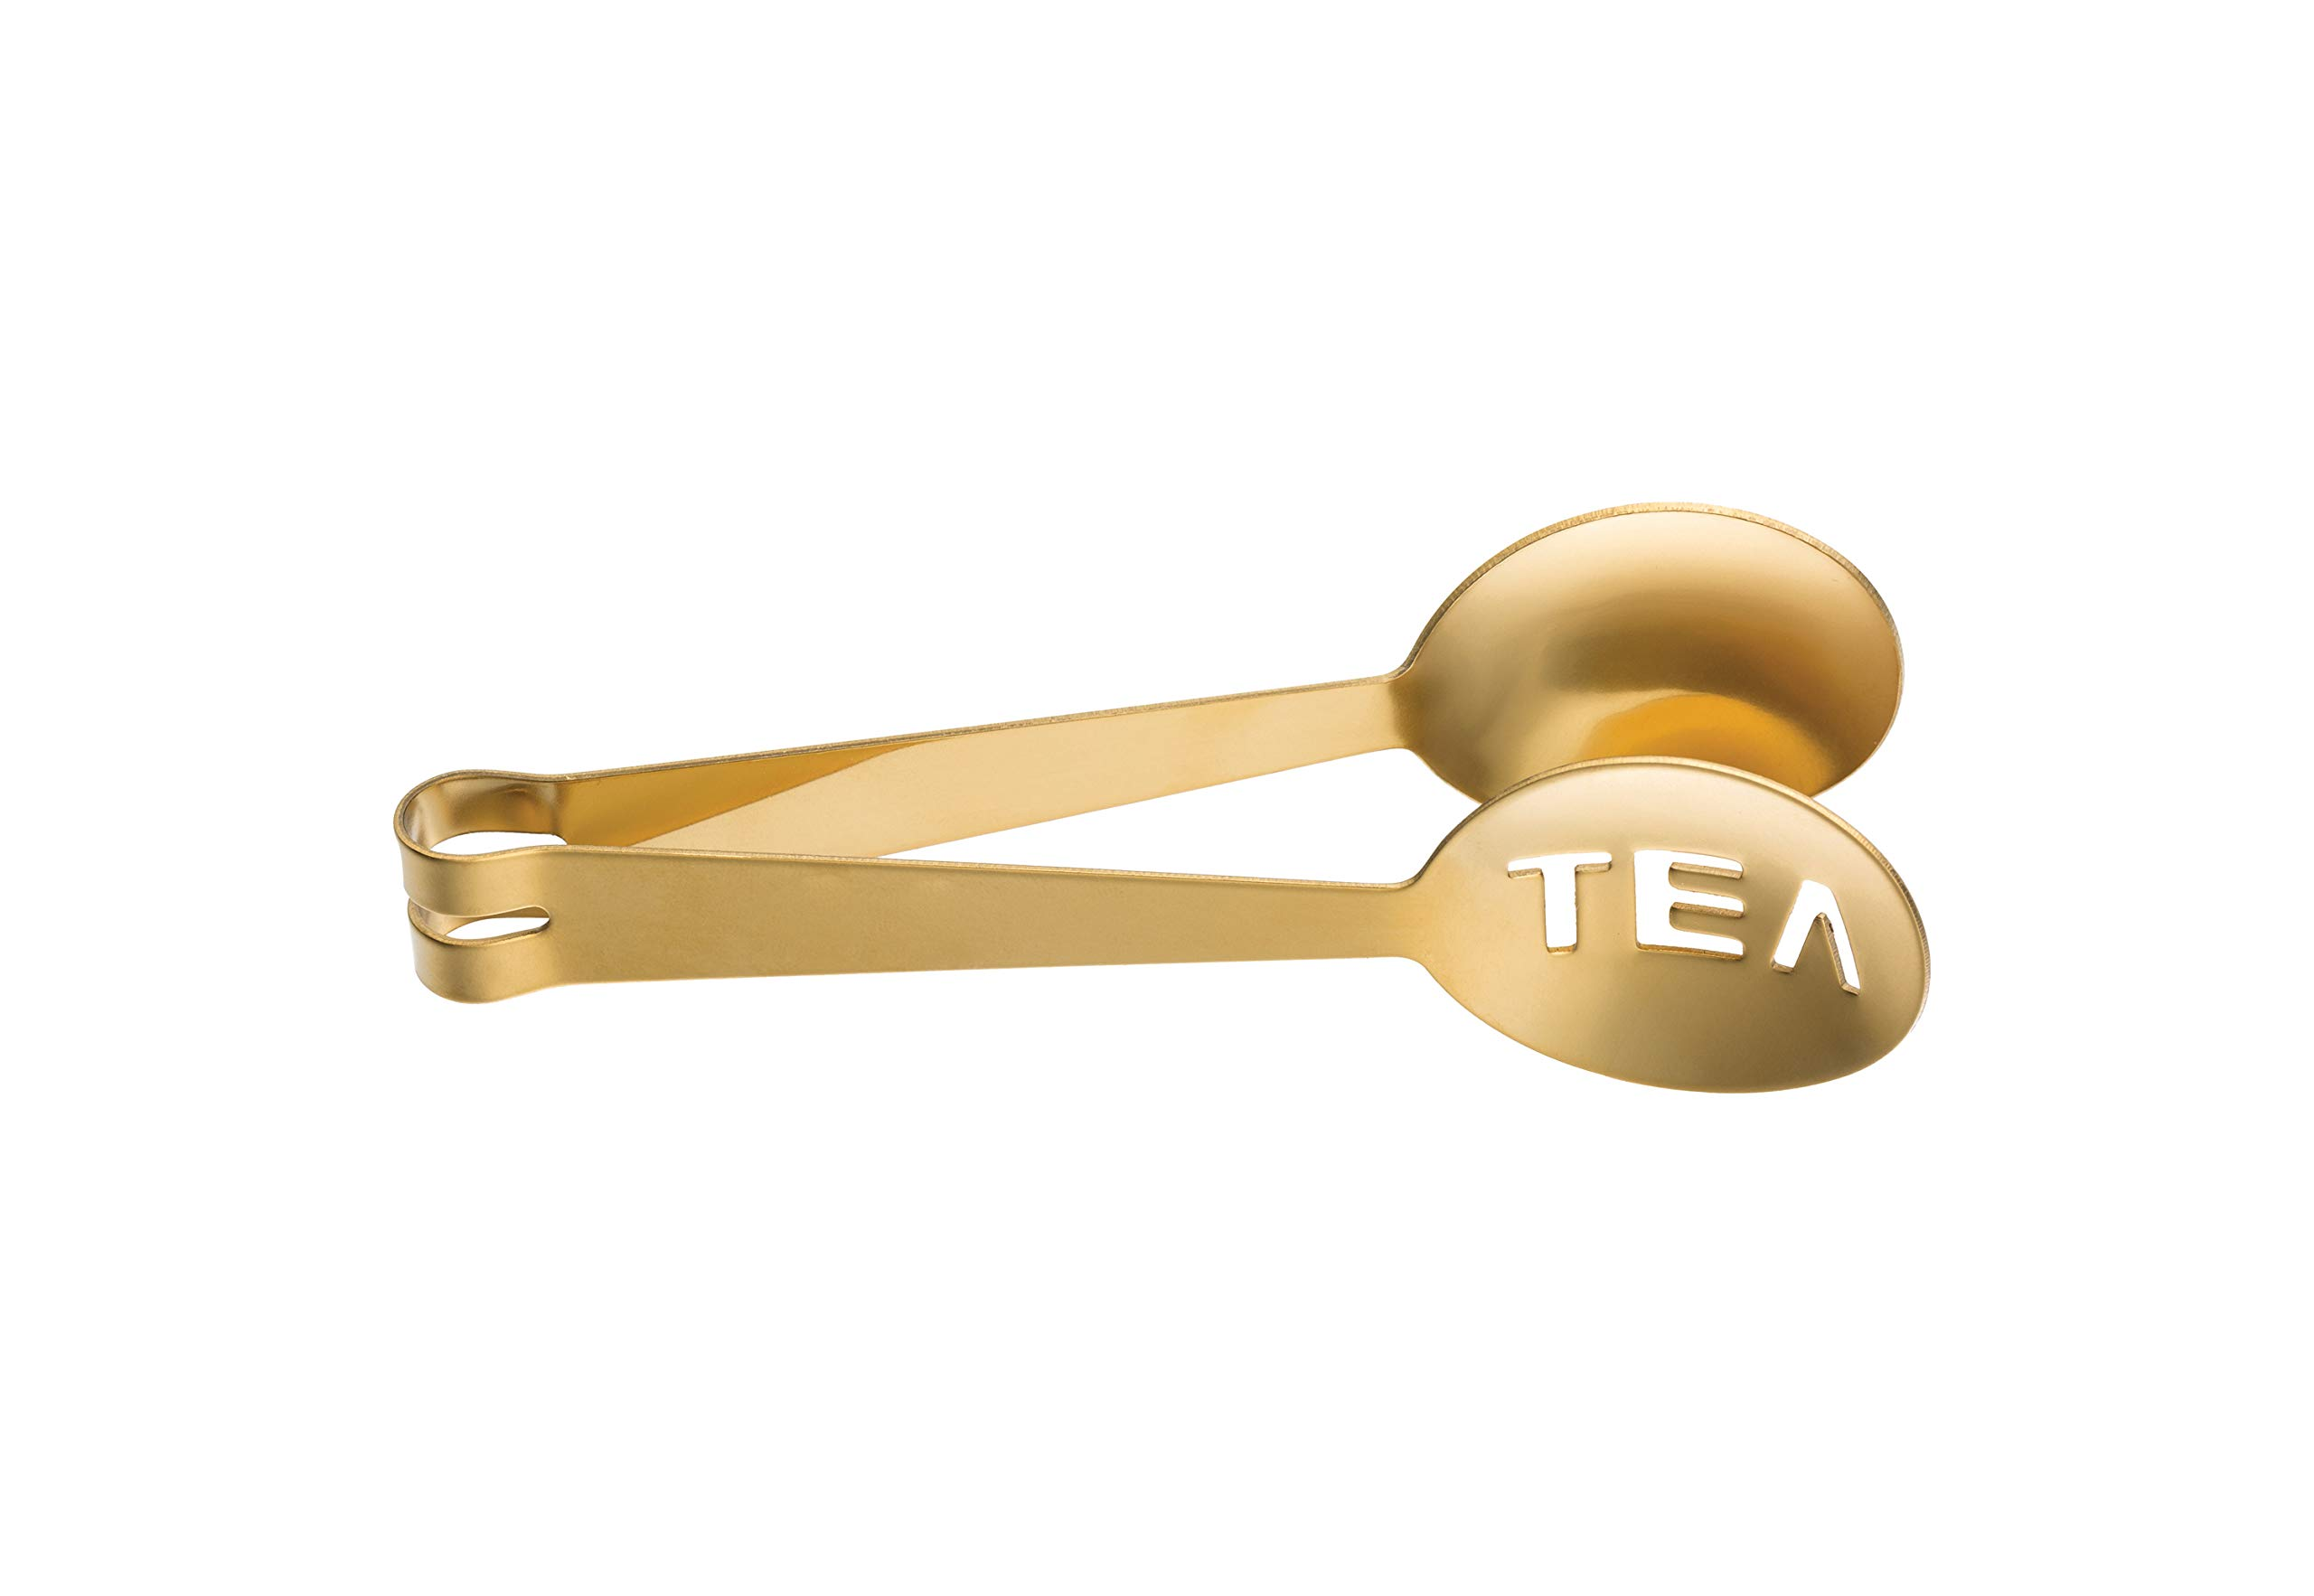 Creative Co-op Gold Electroplated Stainless Steel Tea Tongs Flatware